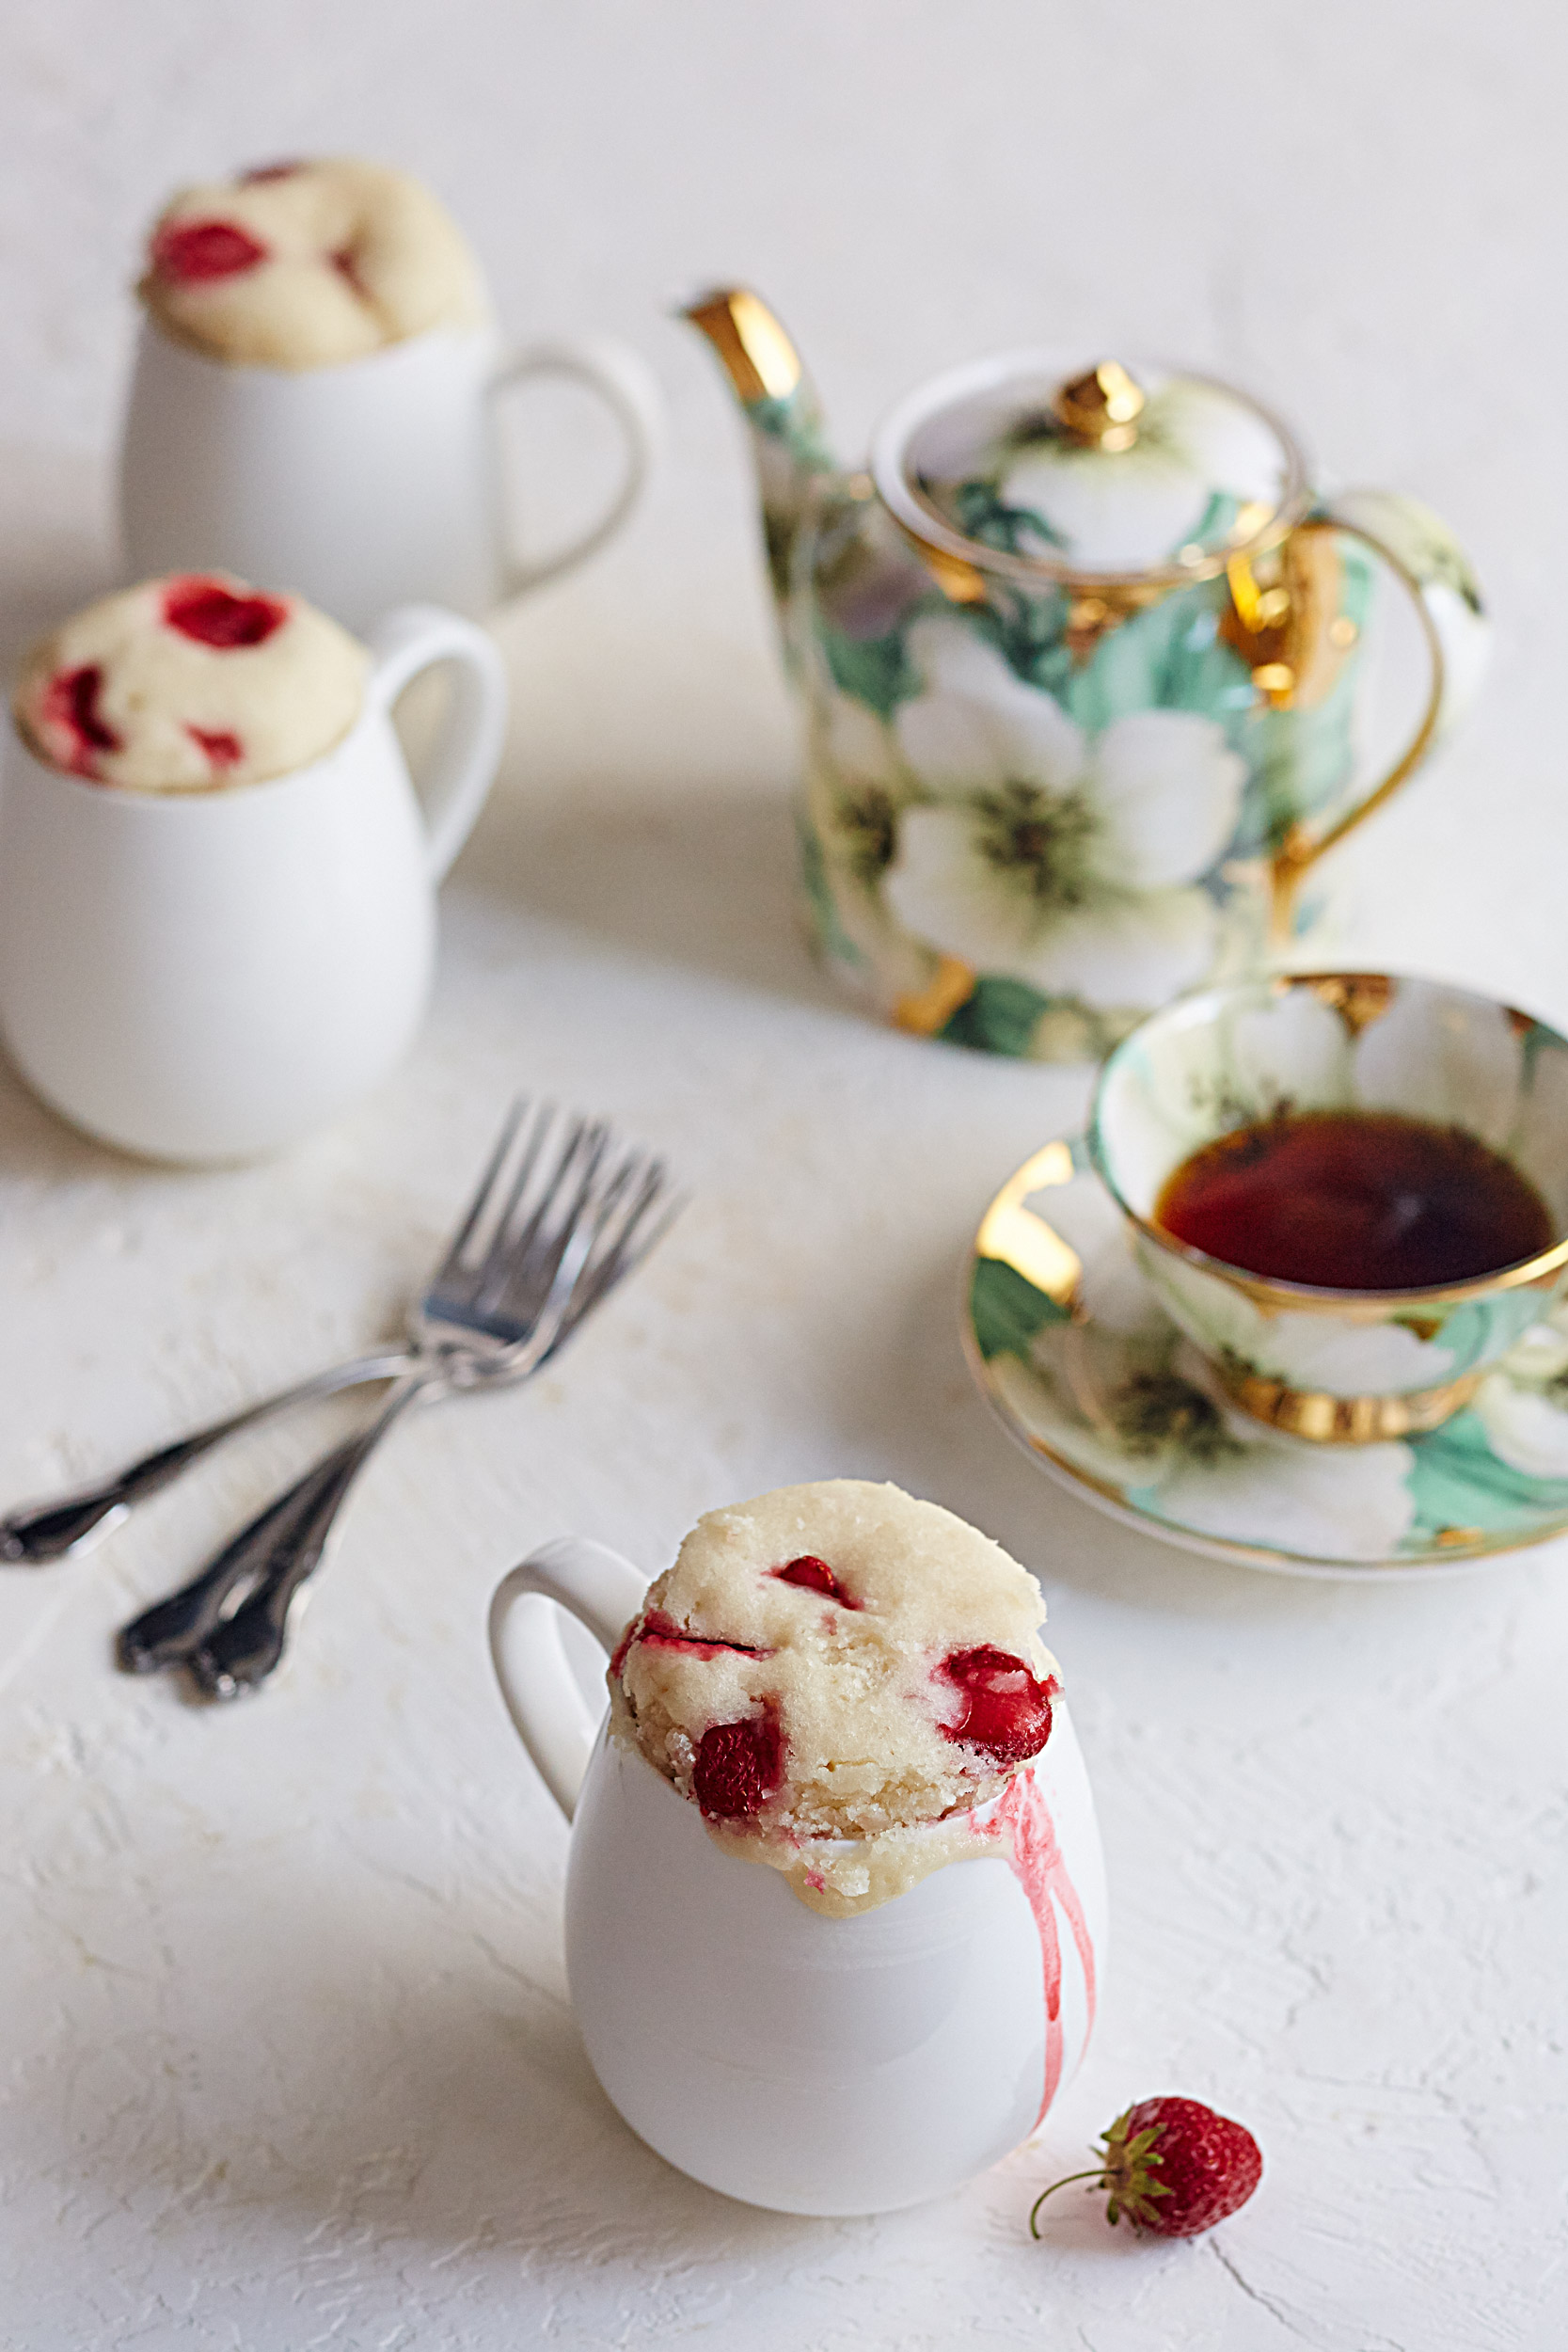 Recipe: Strawberry Shortcake in a Mug | Kitchn